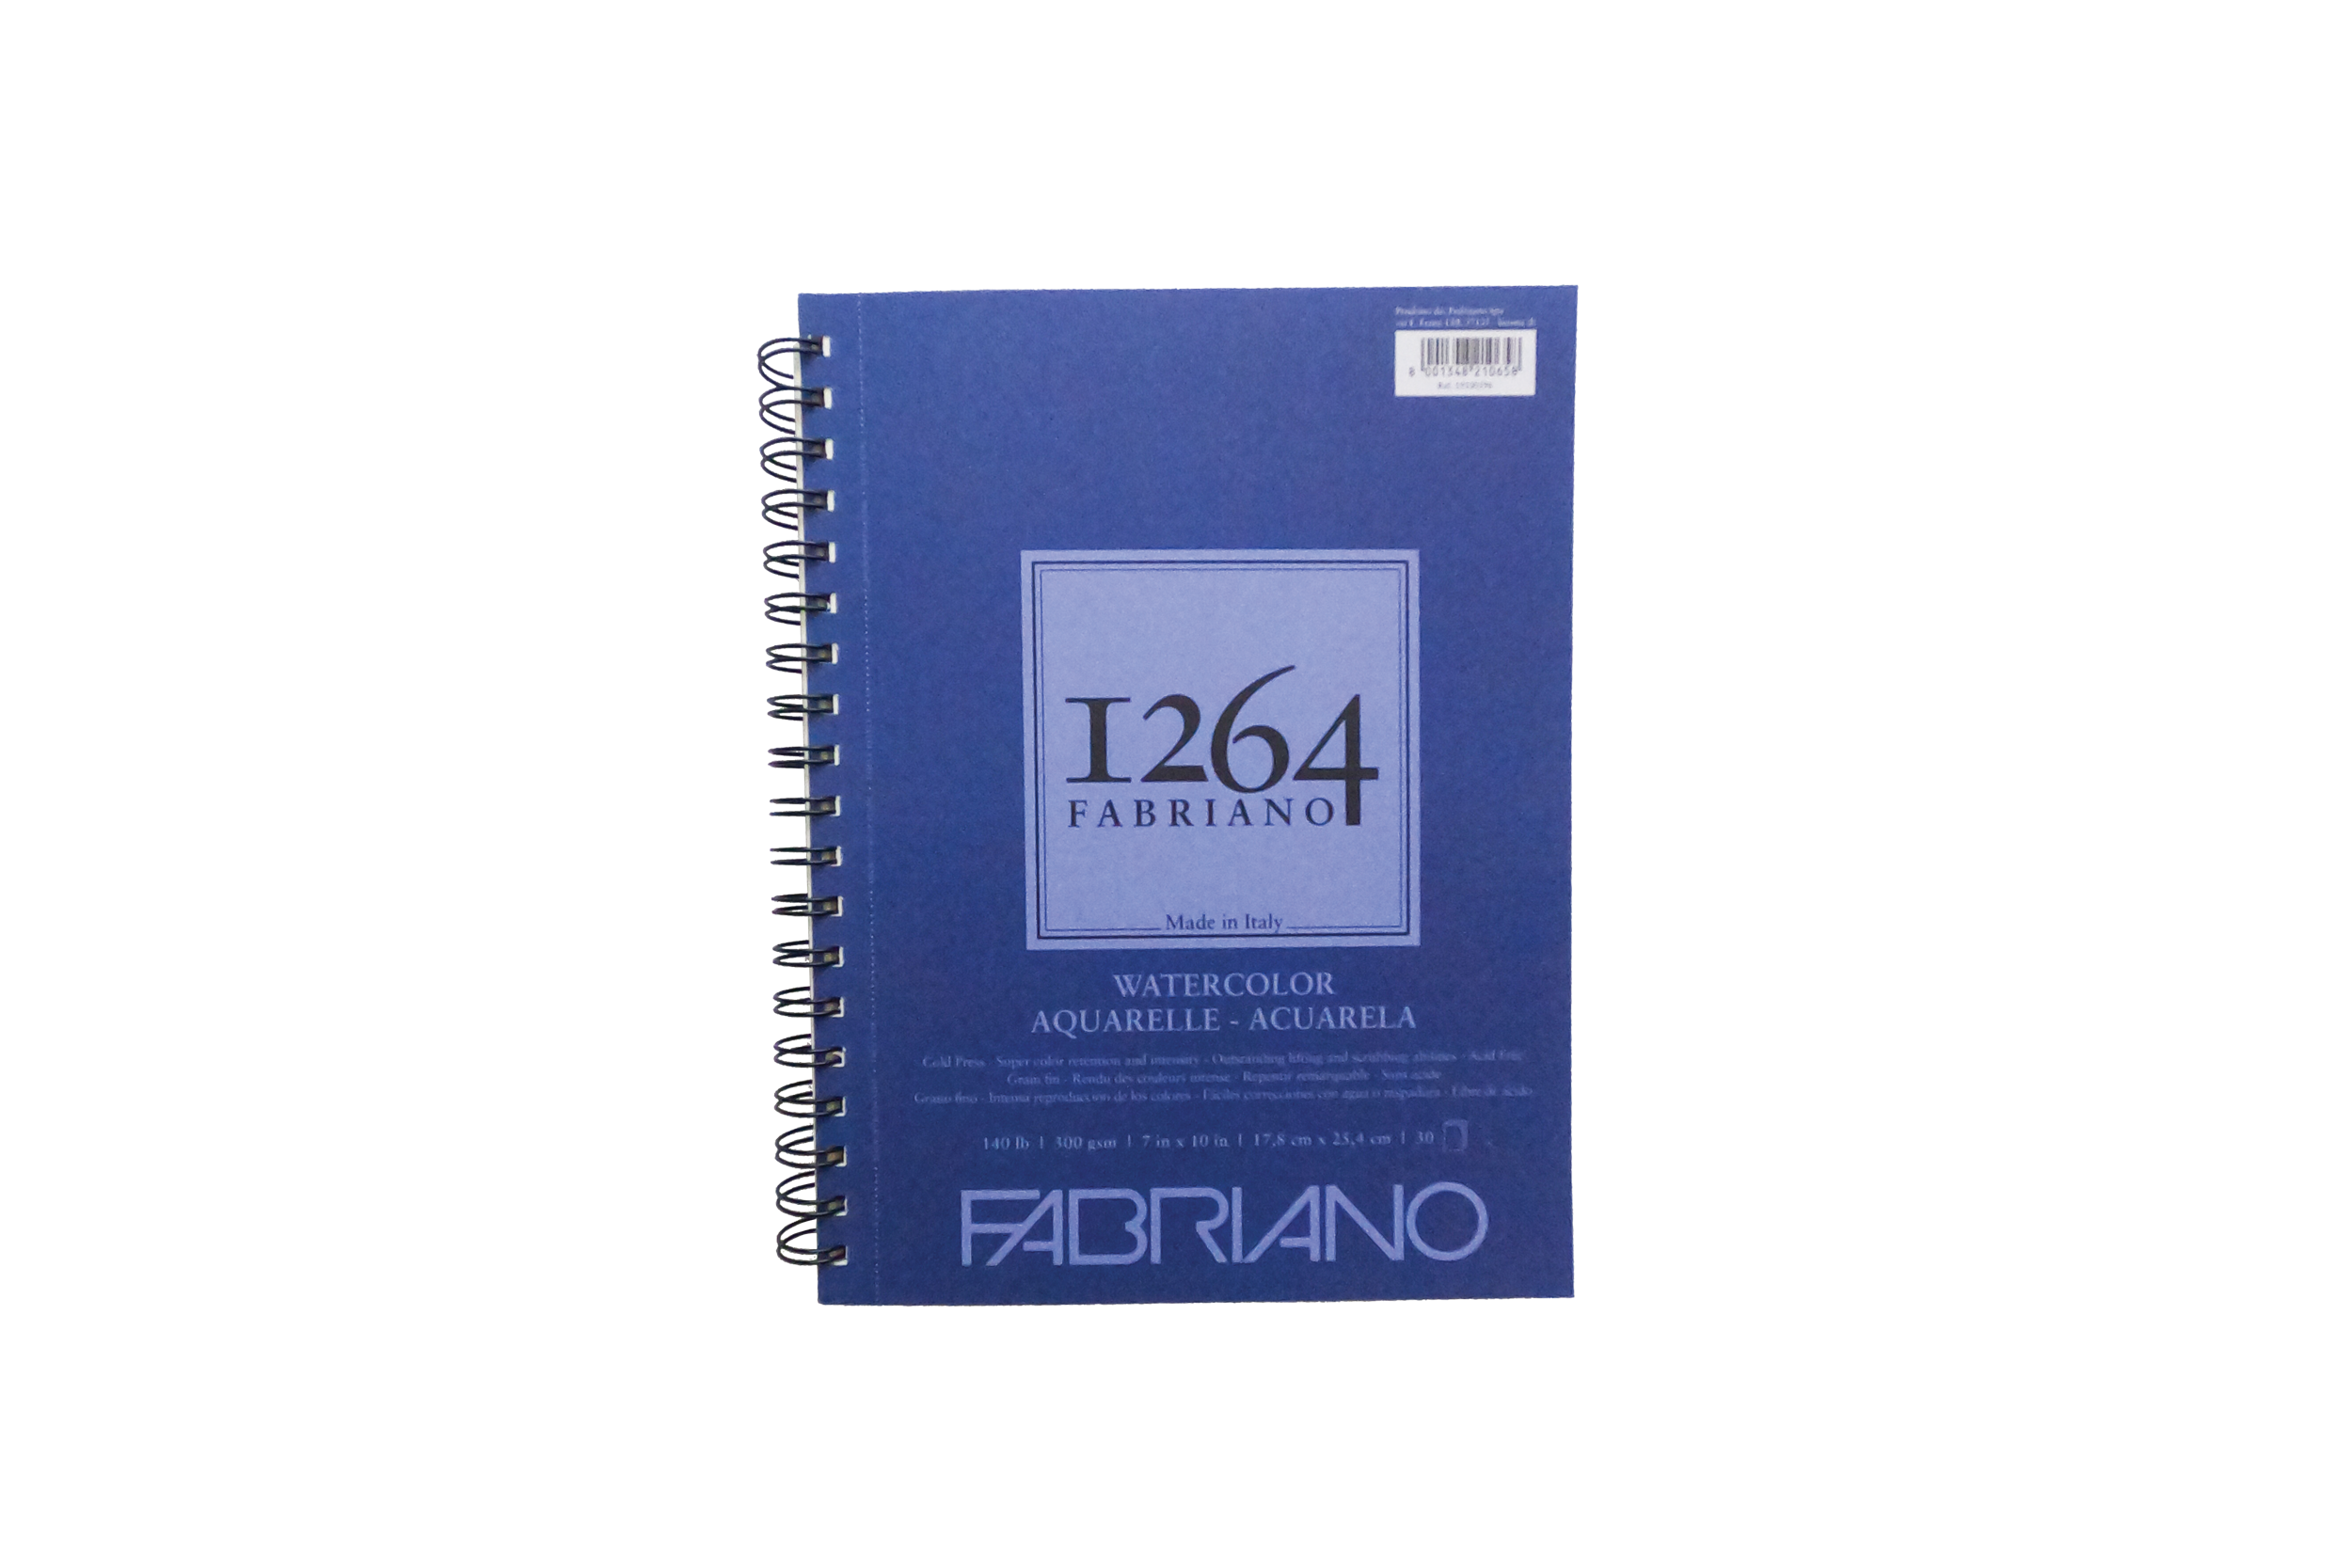 """FABRIANO 1264 WATERCOLOR PADS, SPIRAL-BOUND, 7"""" X 10"""""""